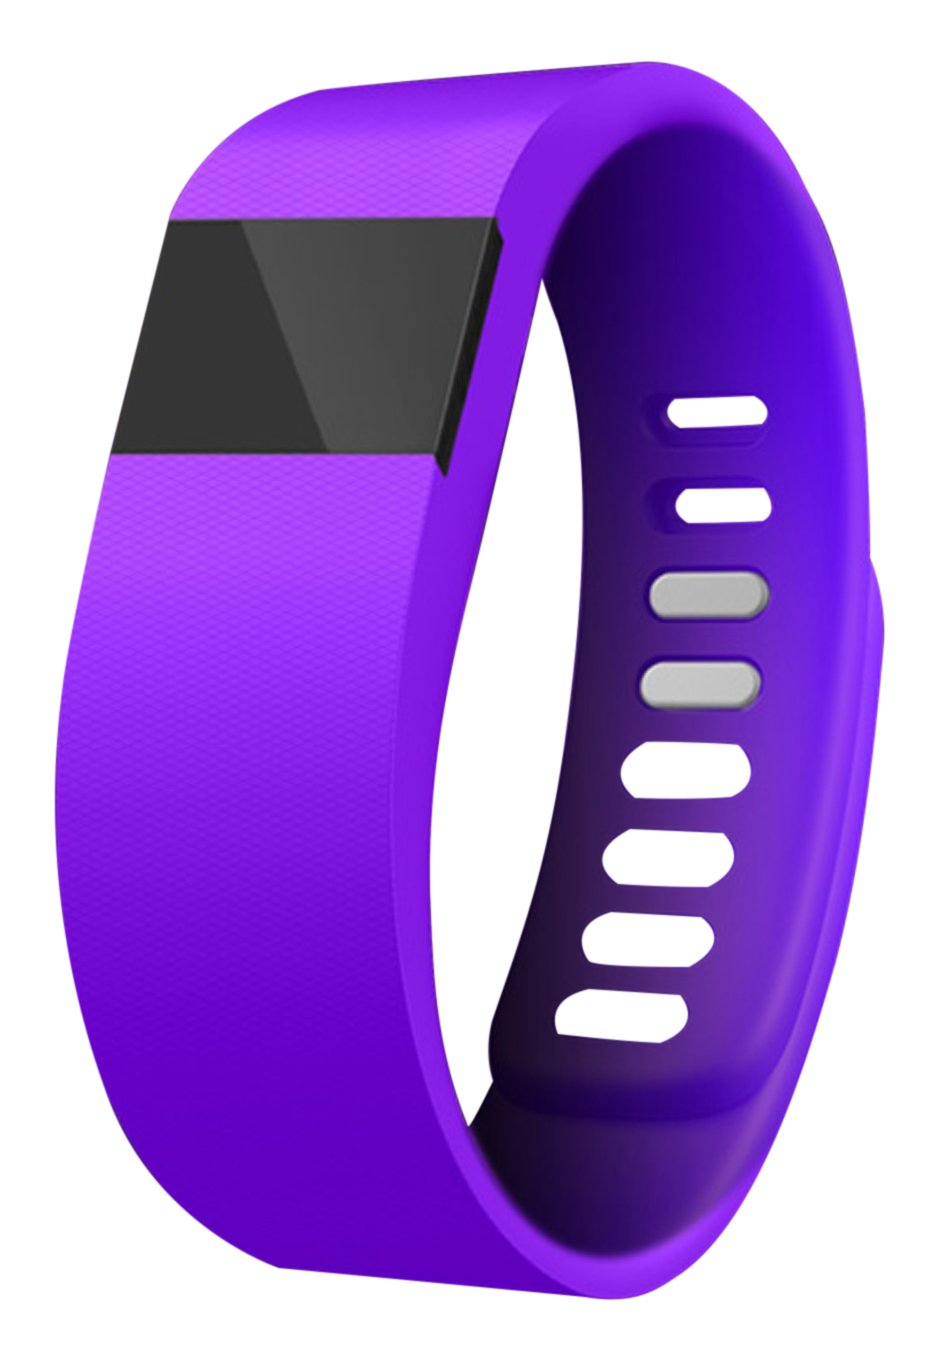 Best fitness trackers Zenixx 815416020517 Glow in The Dark Activity Tracker Pro, Purple